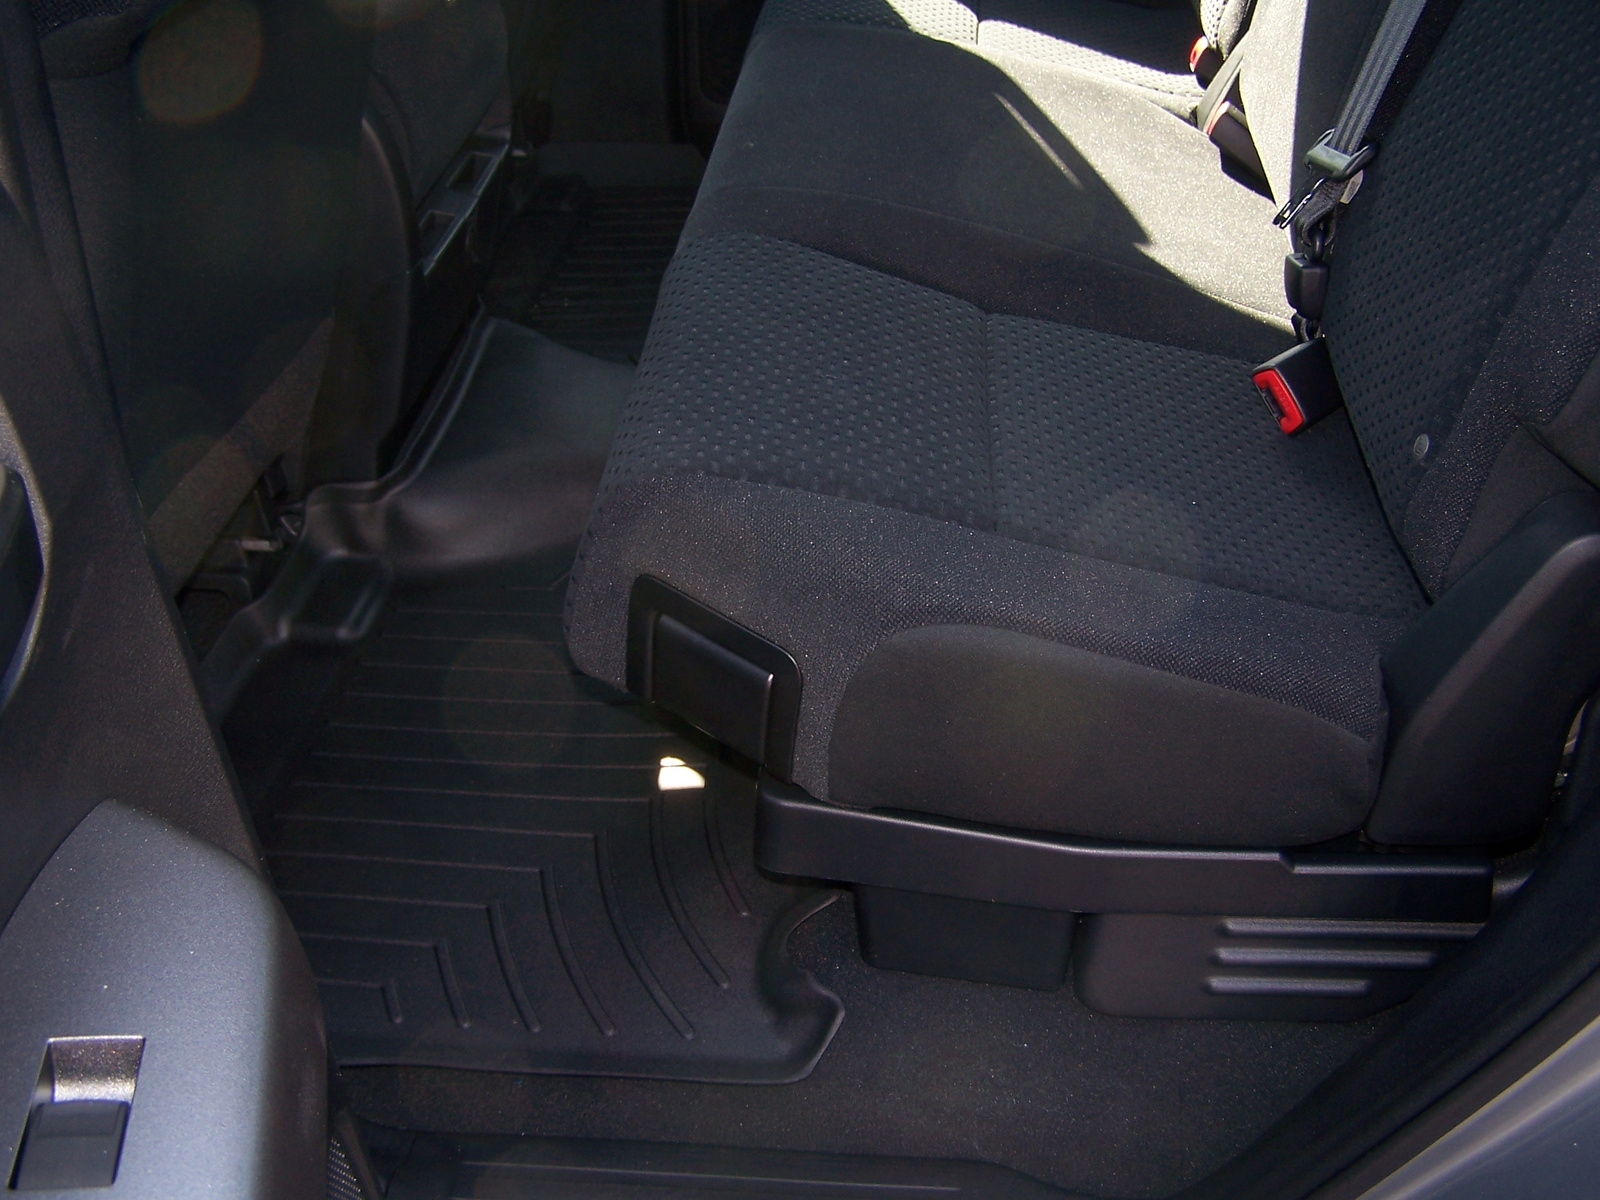 2016 Toyota Tundra Crewmax Under Seat Storage New Oem